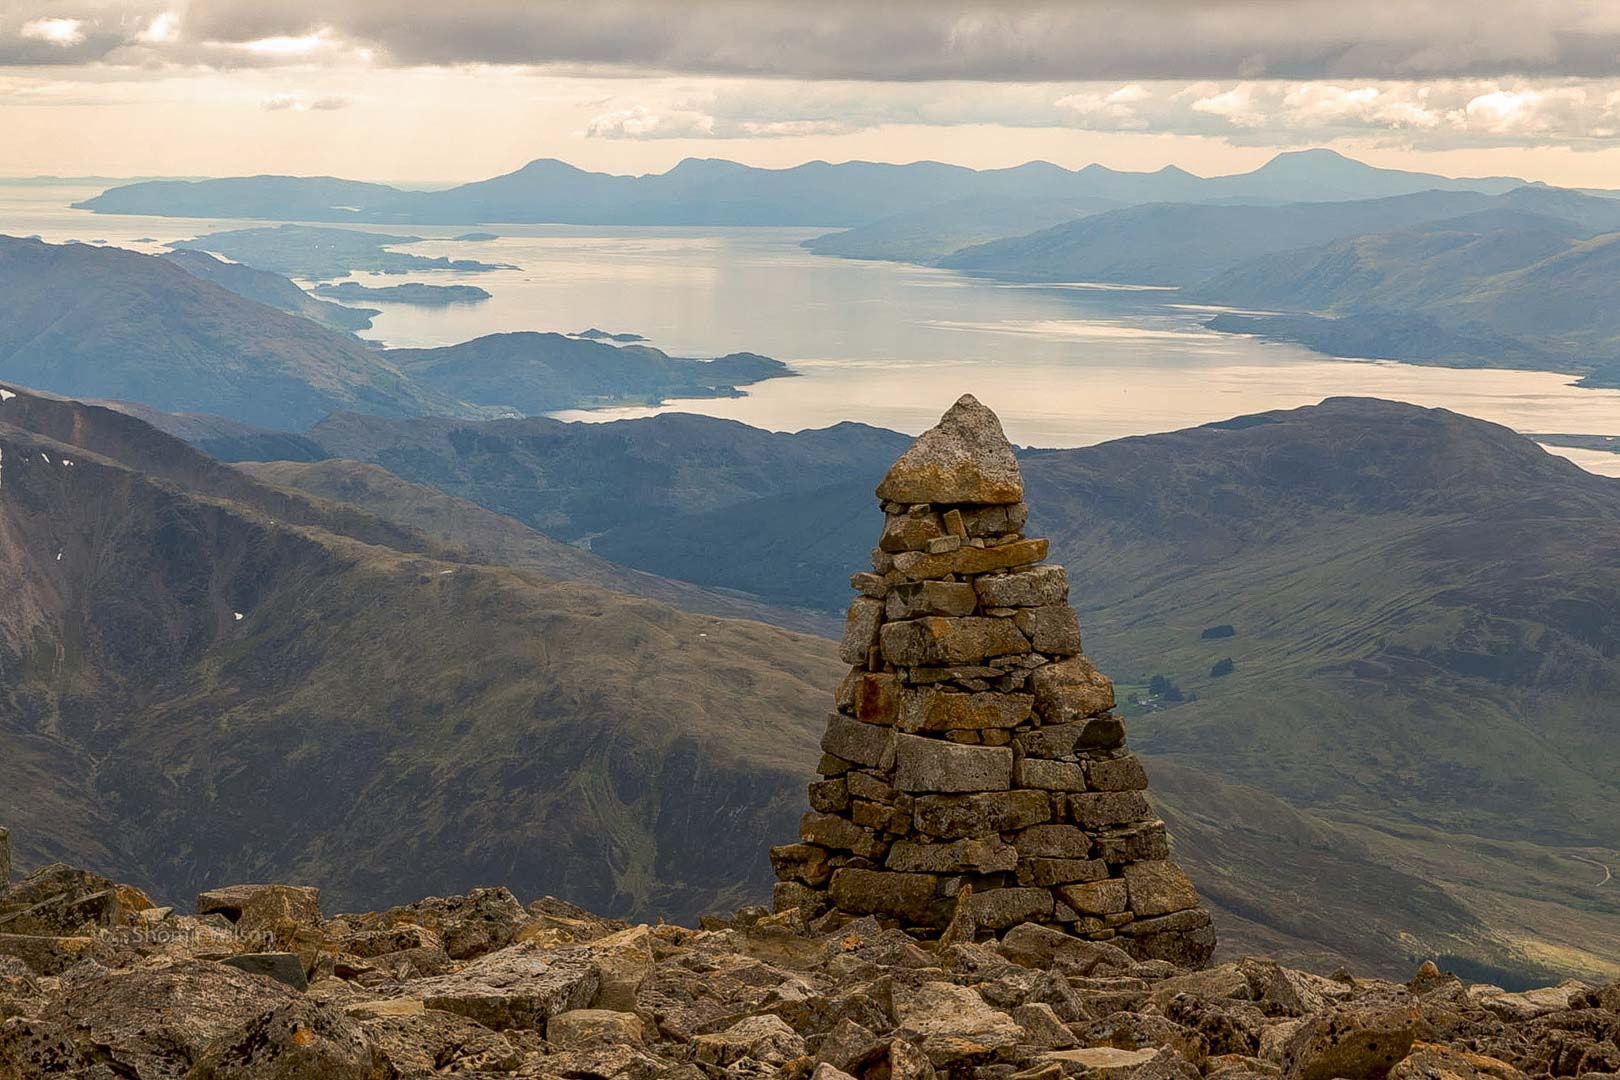 at a high altitude, a cairn of stones surrounded by stones on the ground, with mountains and a sea inlet behind